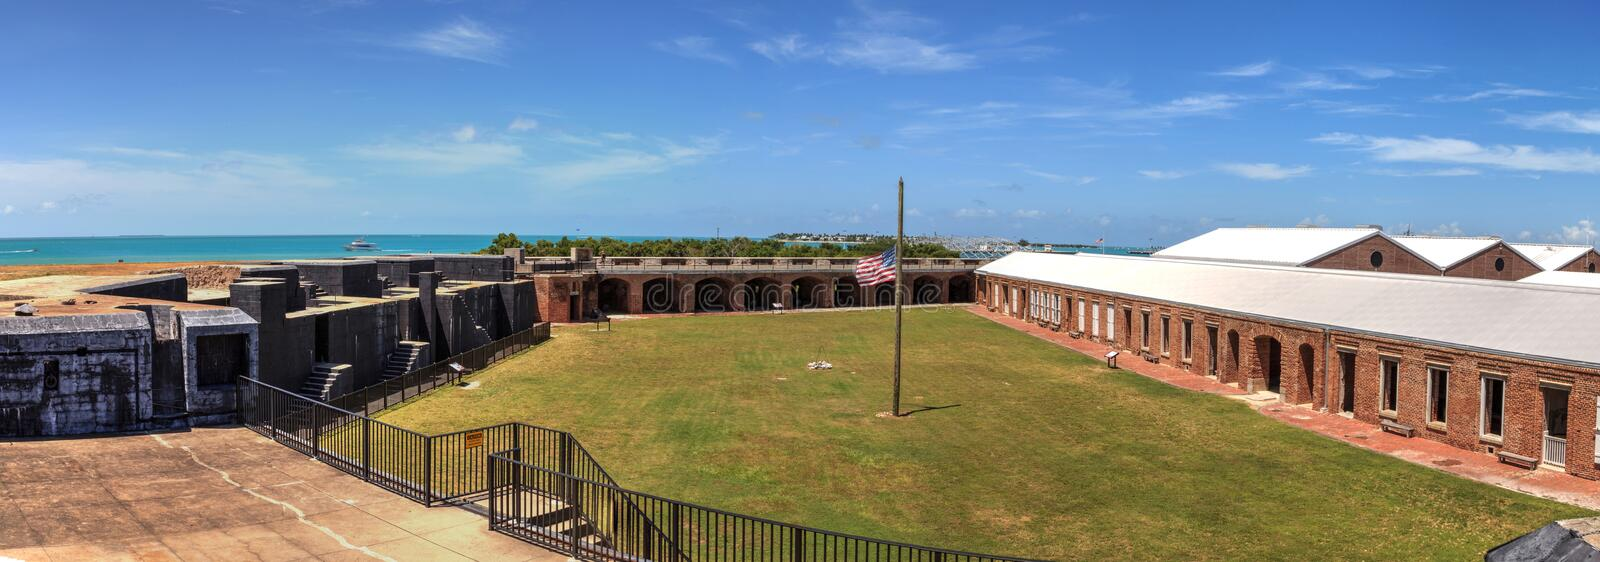 Kustlijnmening van Fort Zachary Taylor in Key West, Florida royalty-vrije stock foto